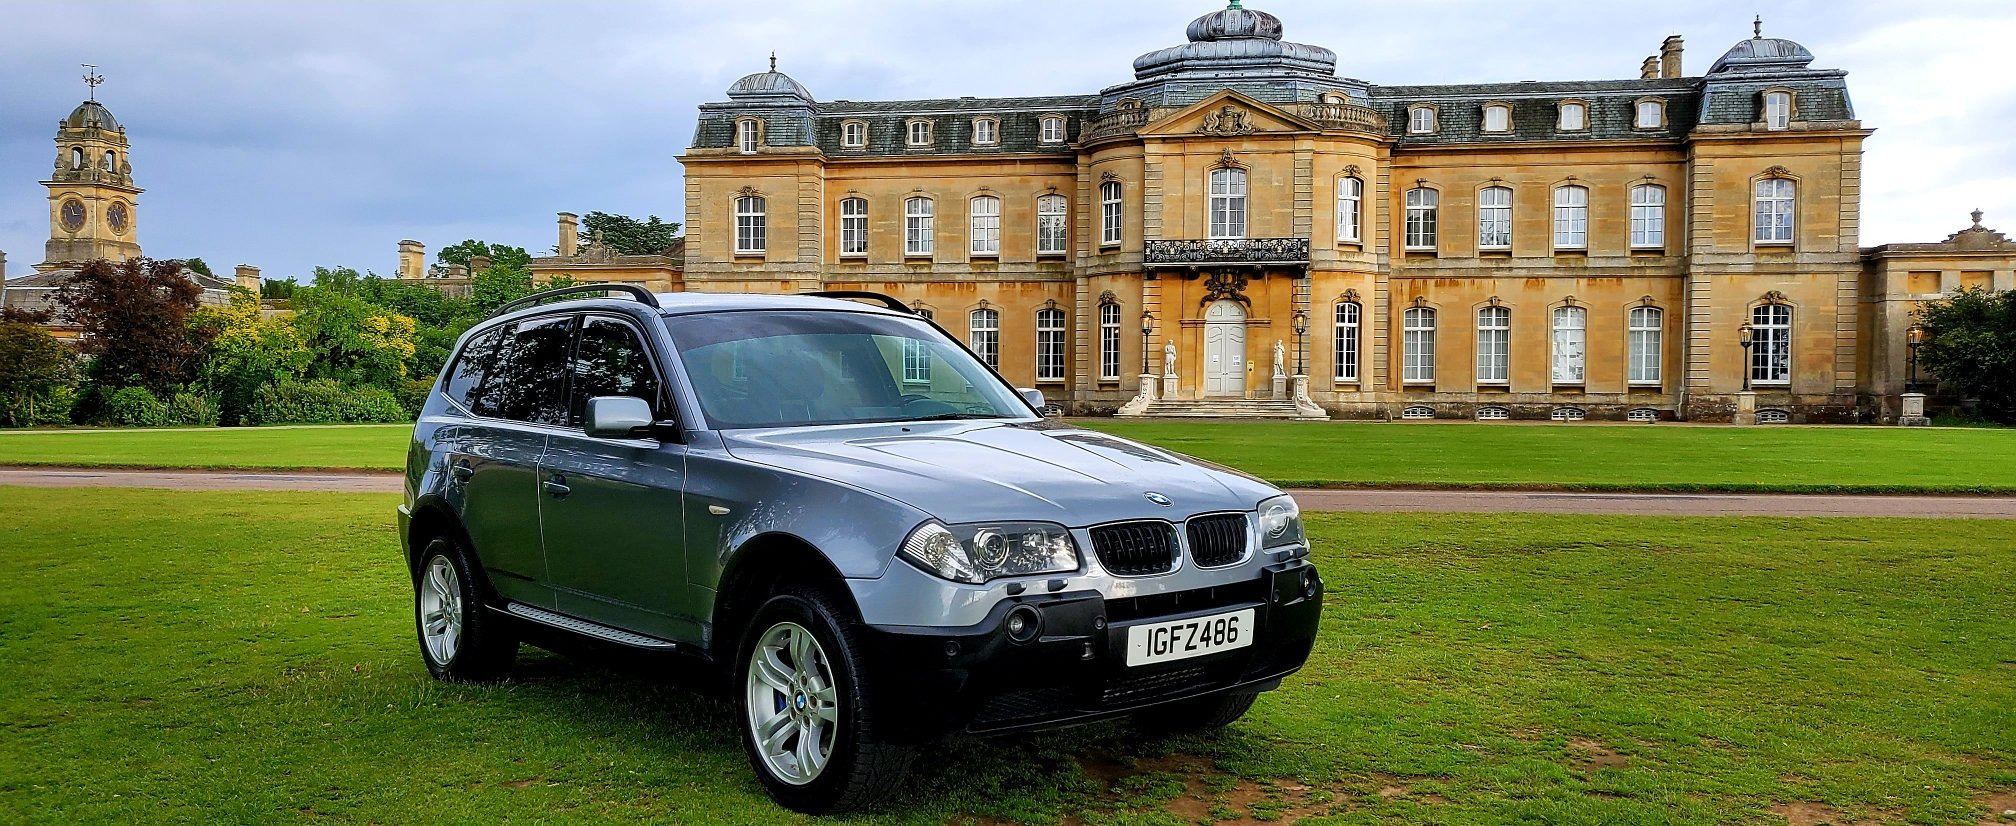 2004 LHD BMW X3, 3.0d Sport 5dr, Auto, Turbo,LEFT HAND DRIVE For Sale (picture 1 of 6)